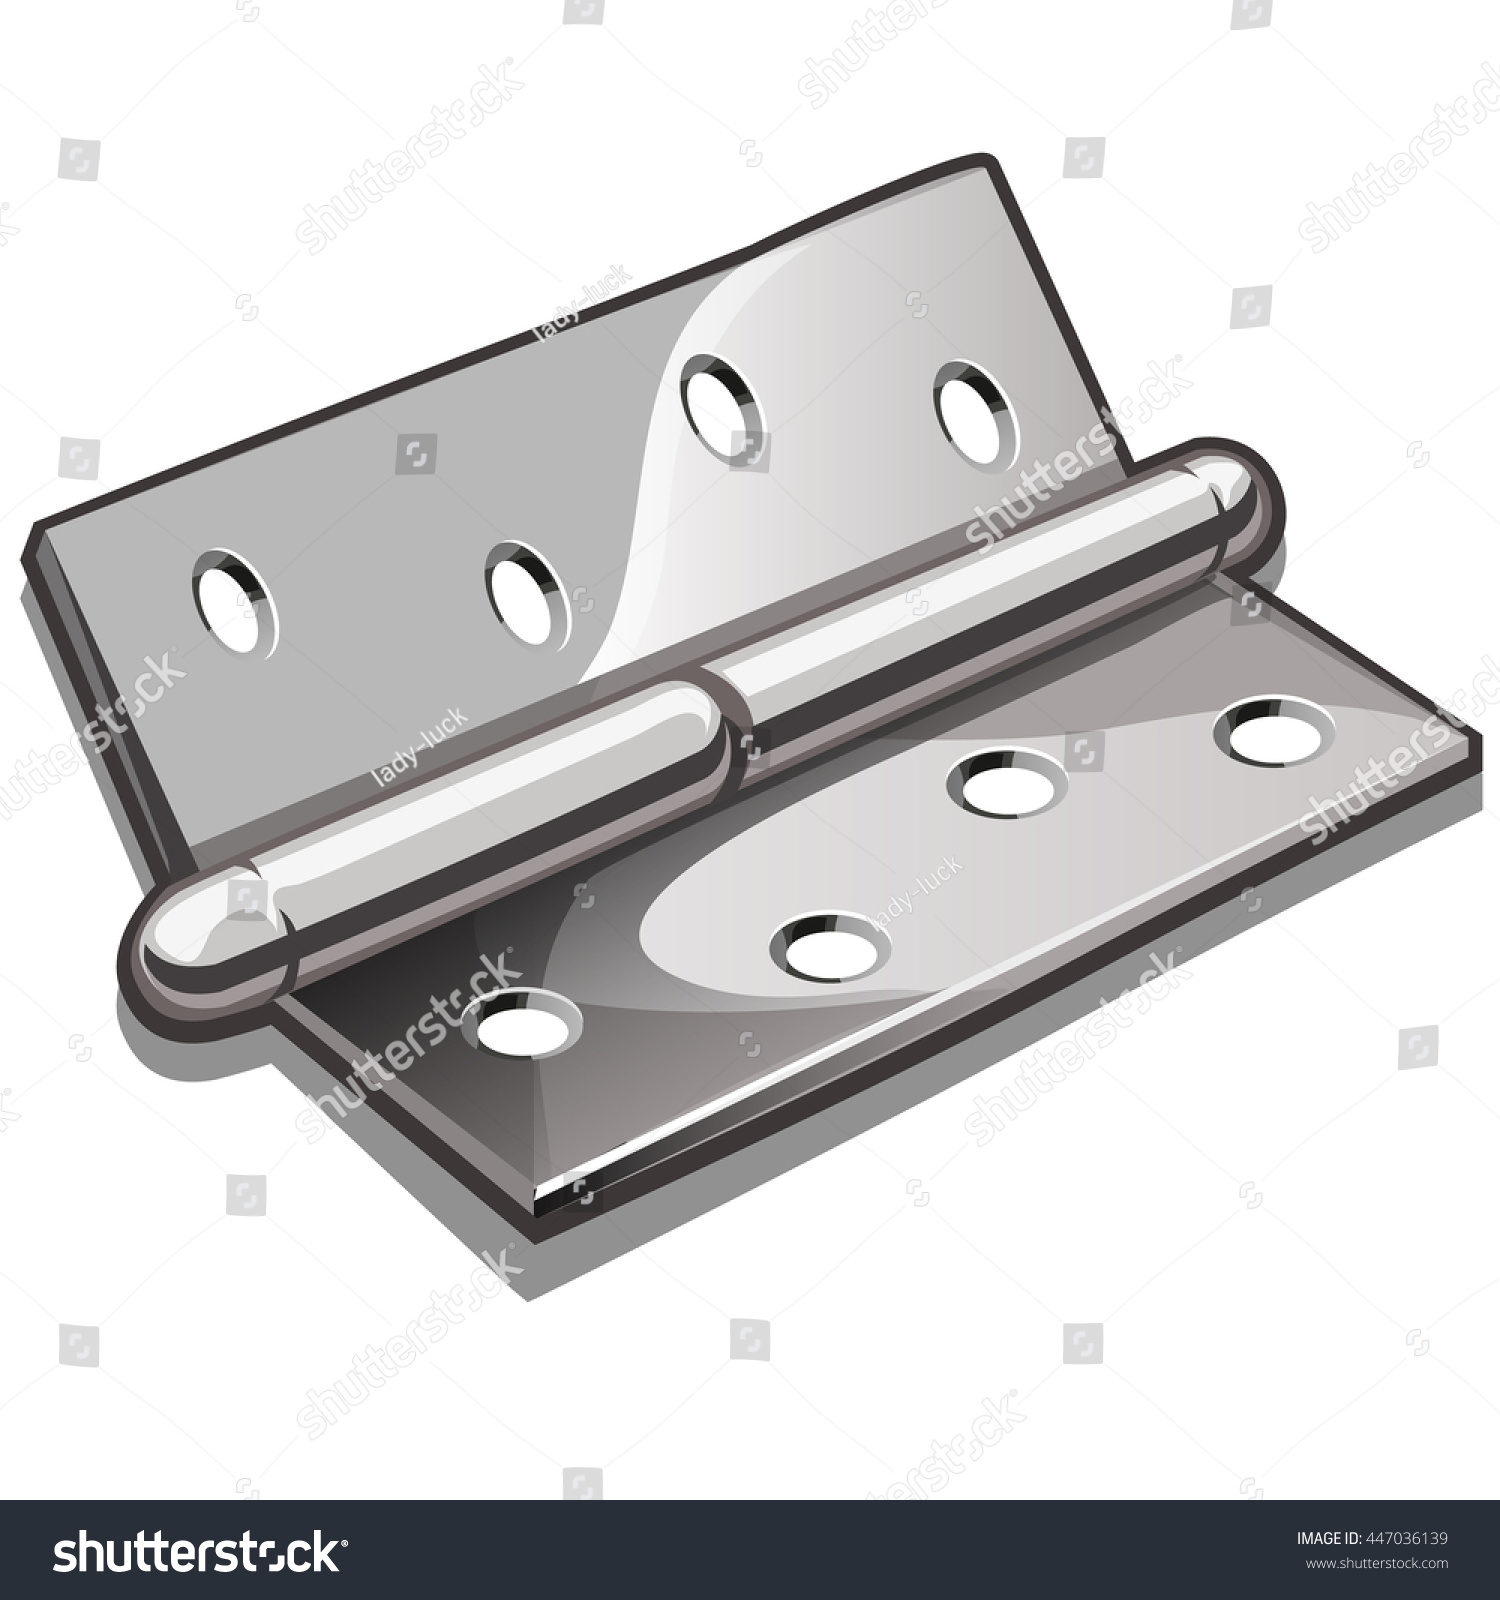 Door hinge isolated on white background. Construction and finishing materials. Vector illustration.  sc 1 st  Shutterstock & Door Hinge Isolated On White Background Stock Vector 447036139 ... pezcame.com